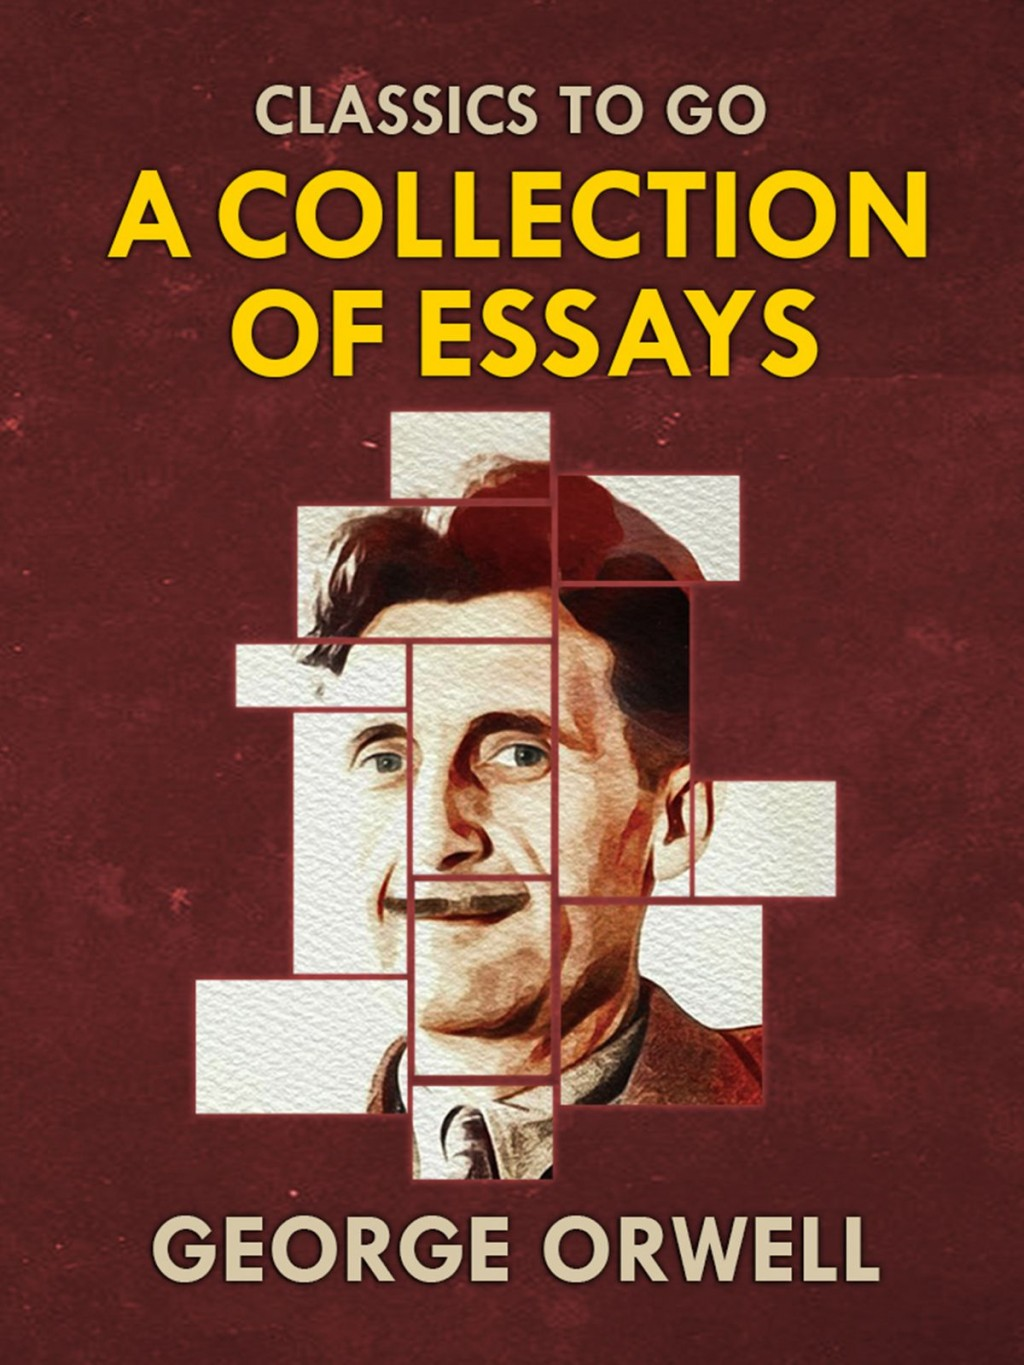 George orwell a collection of essays